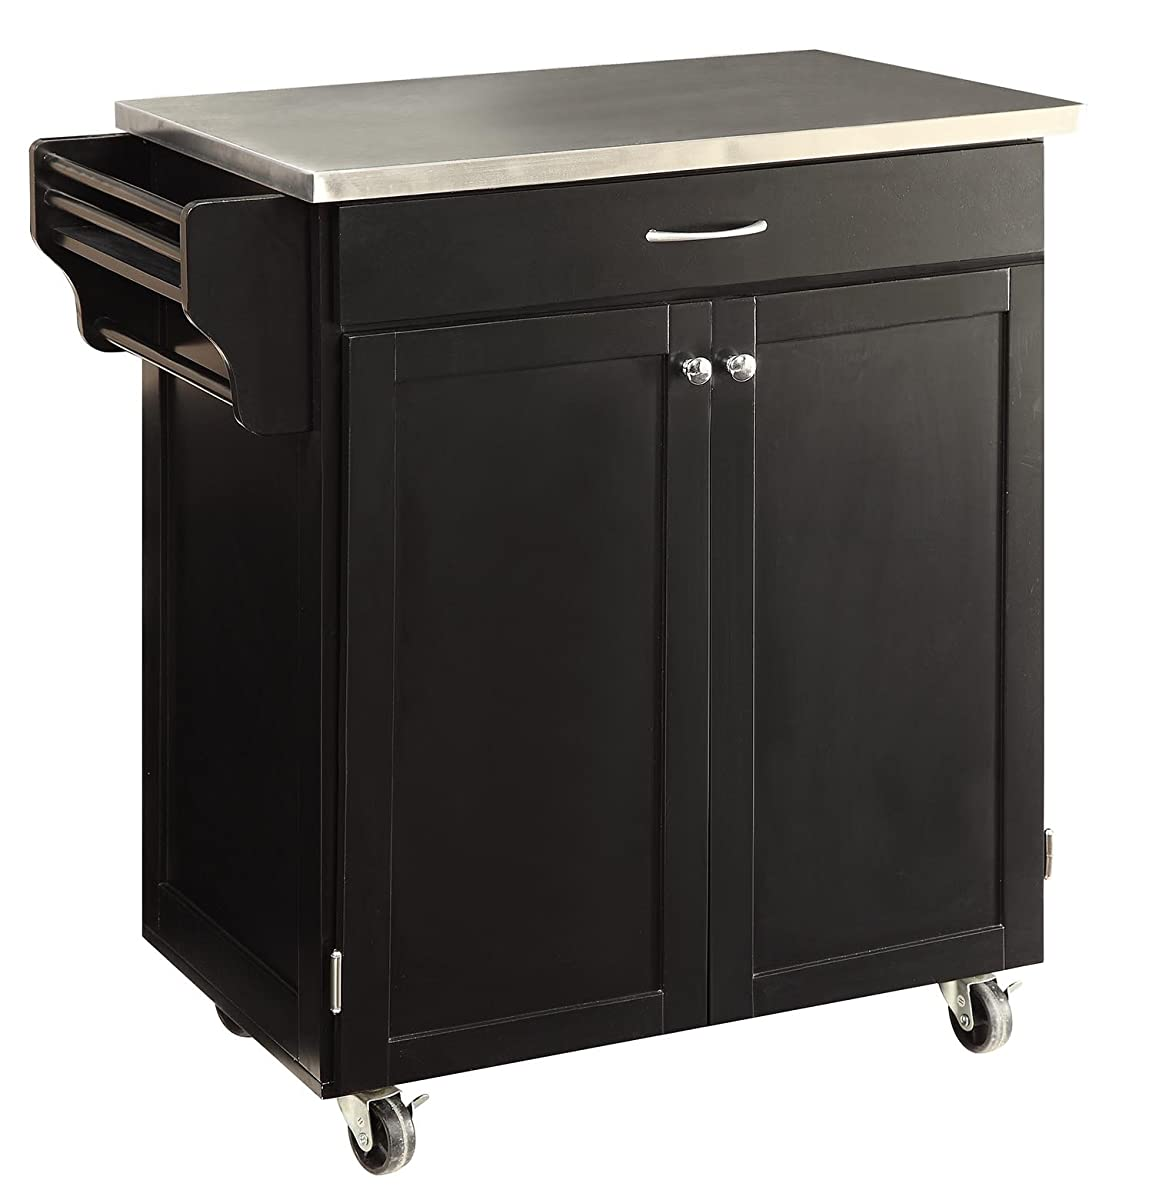 Oliver and smith nashville collection mobile kitchen for Kitchen units on wheels